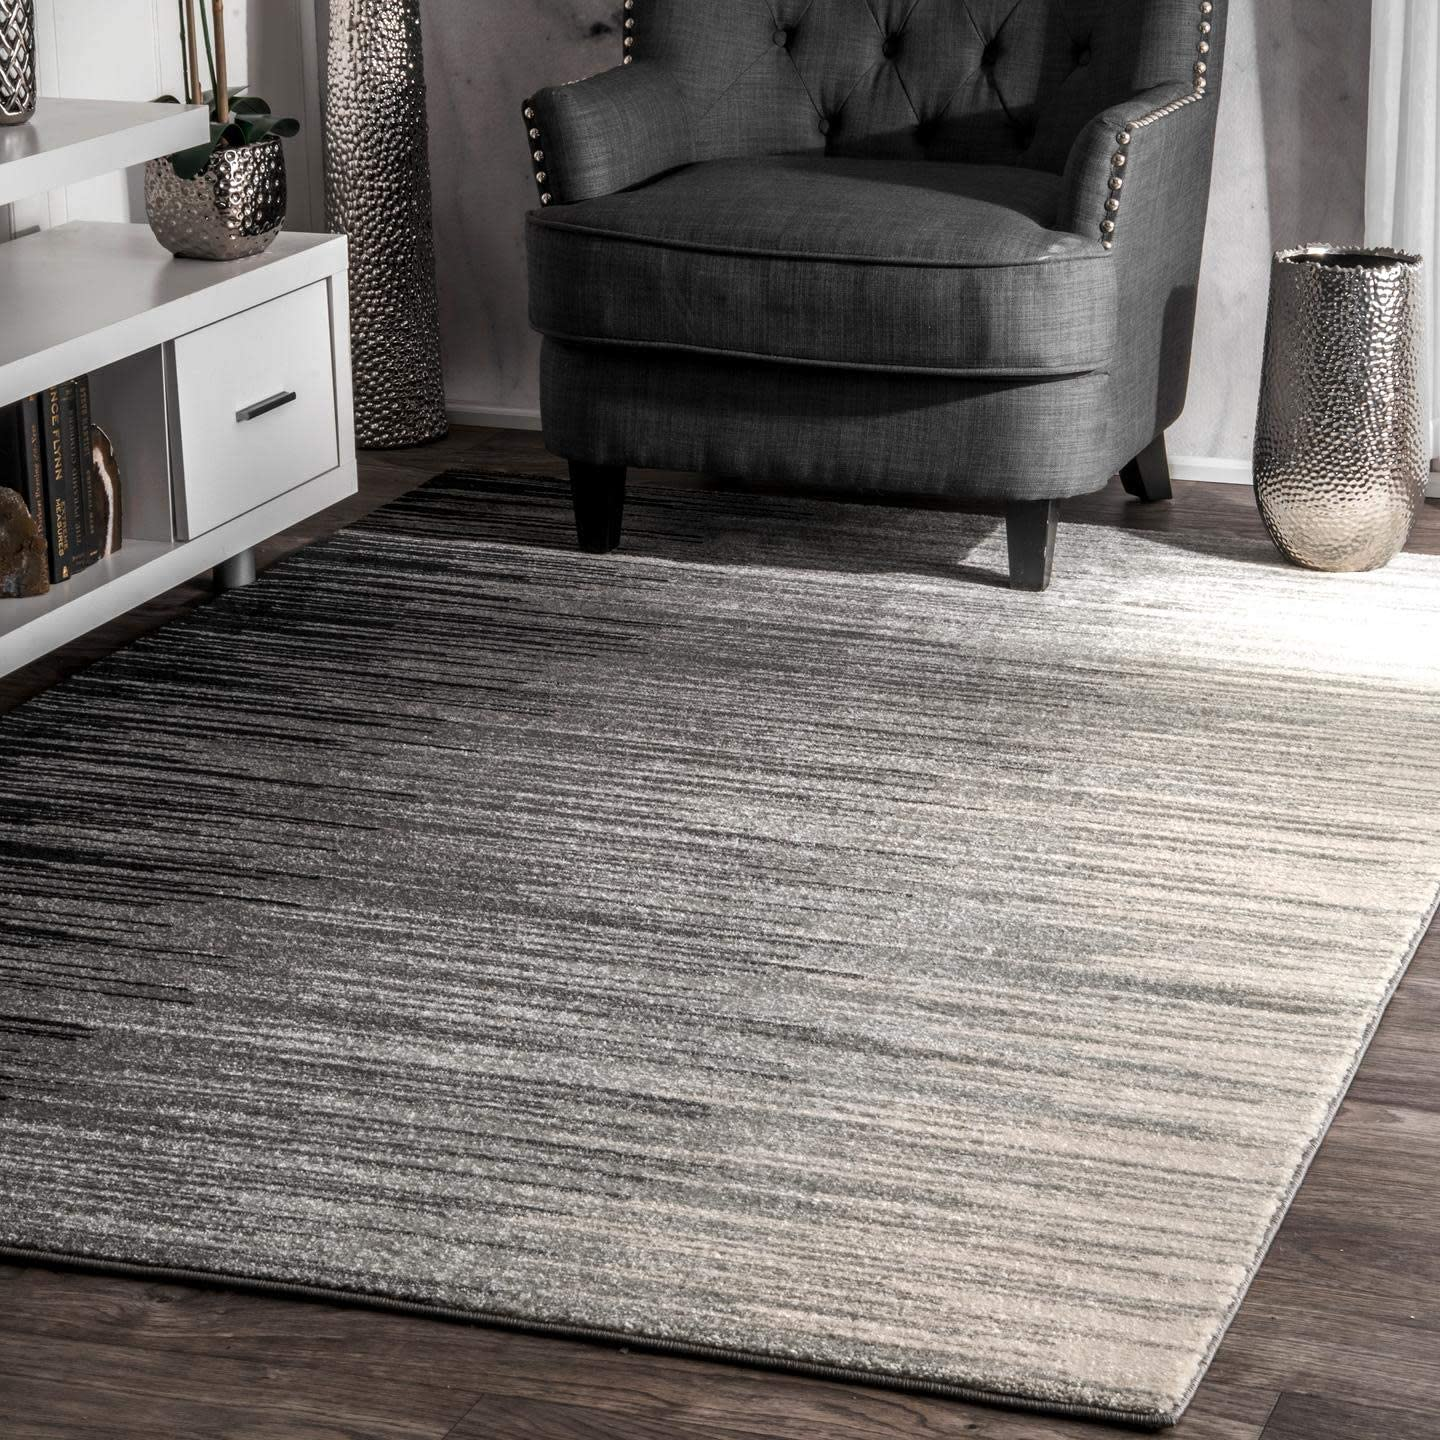 Amazon Com Nuloom Lexie Ombre Area Rug 8 X 10 Black Home Kitchen